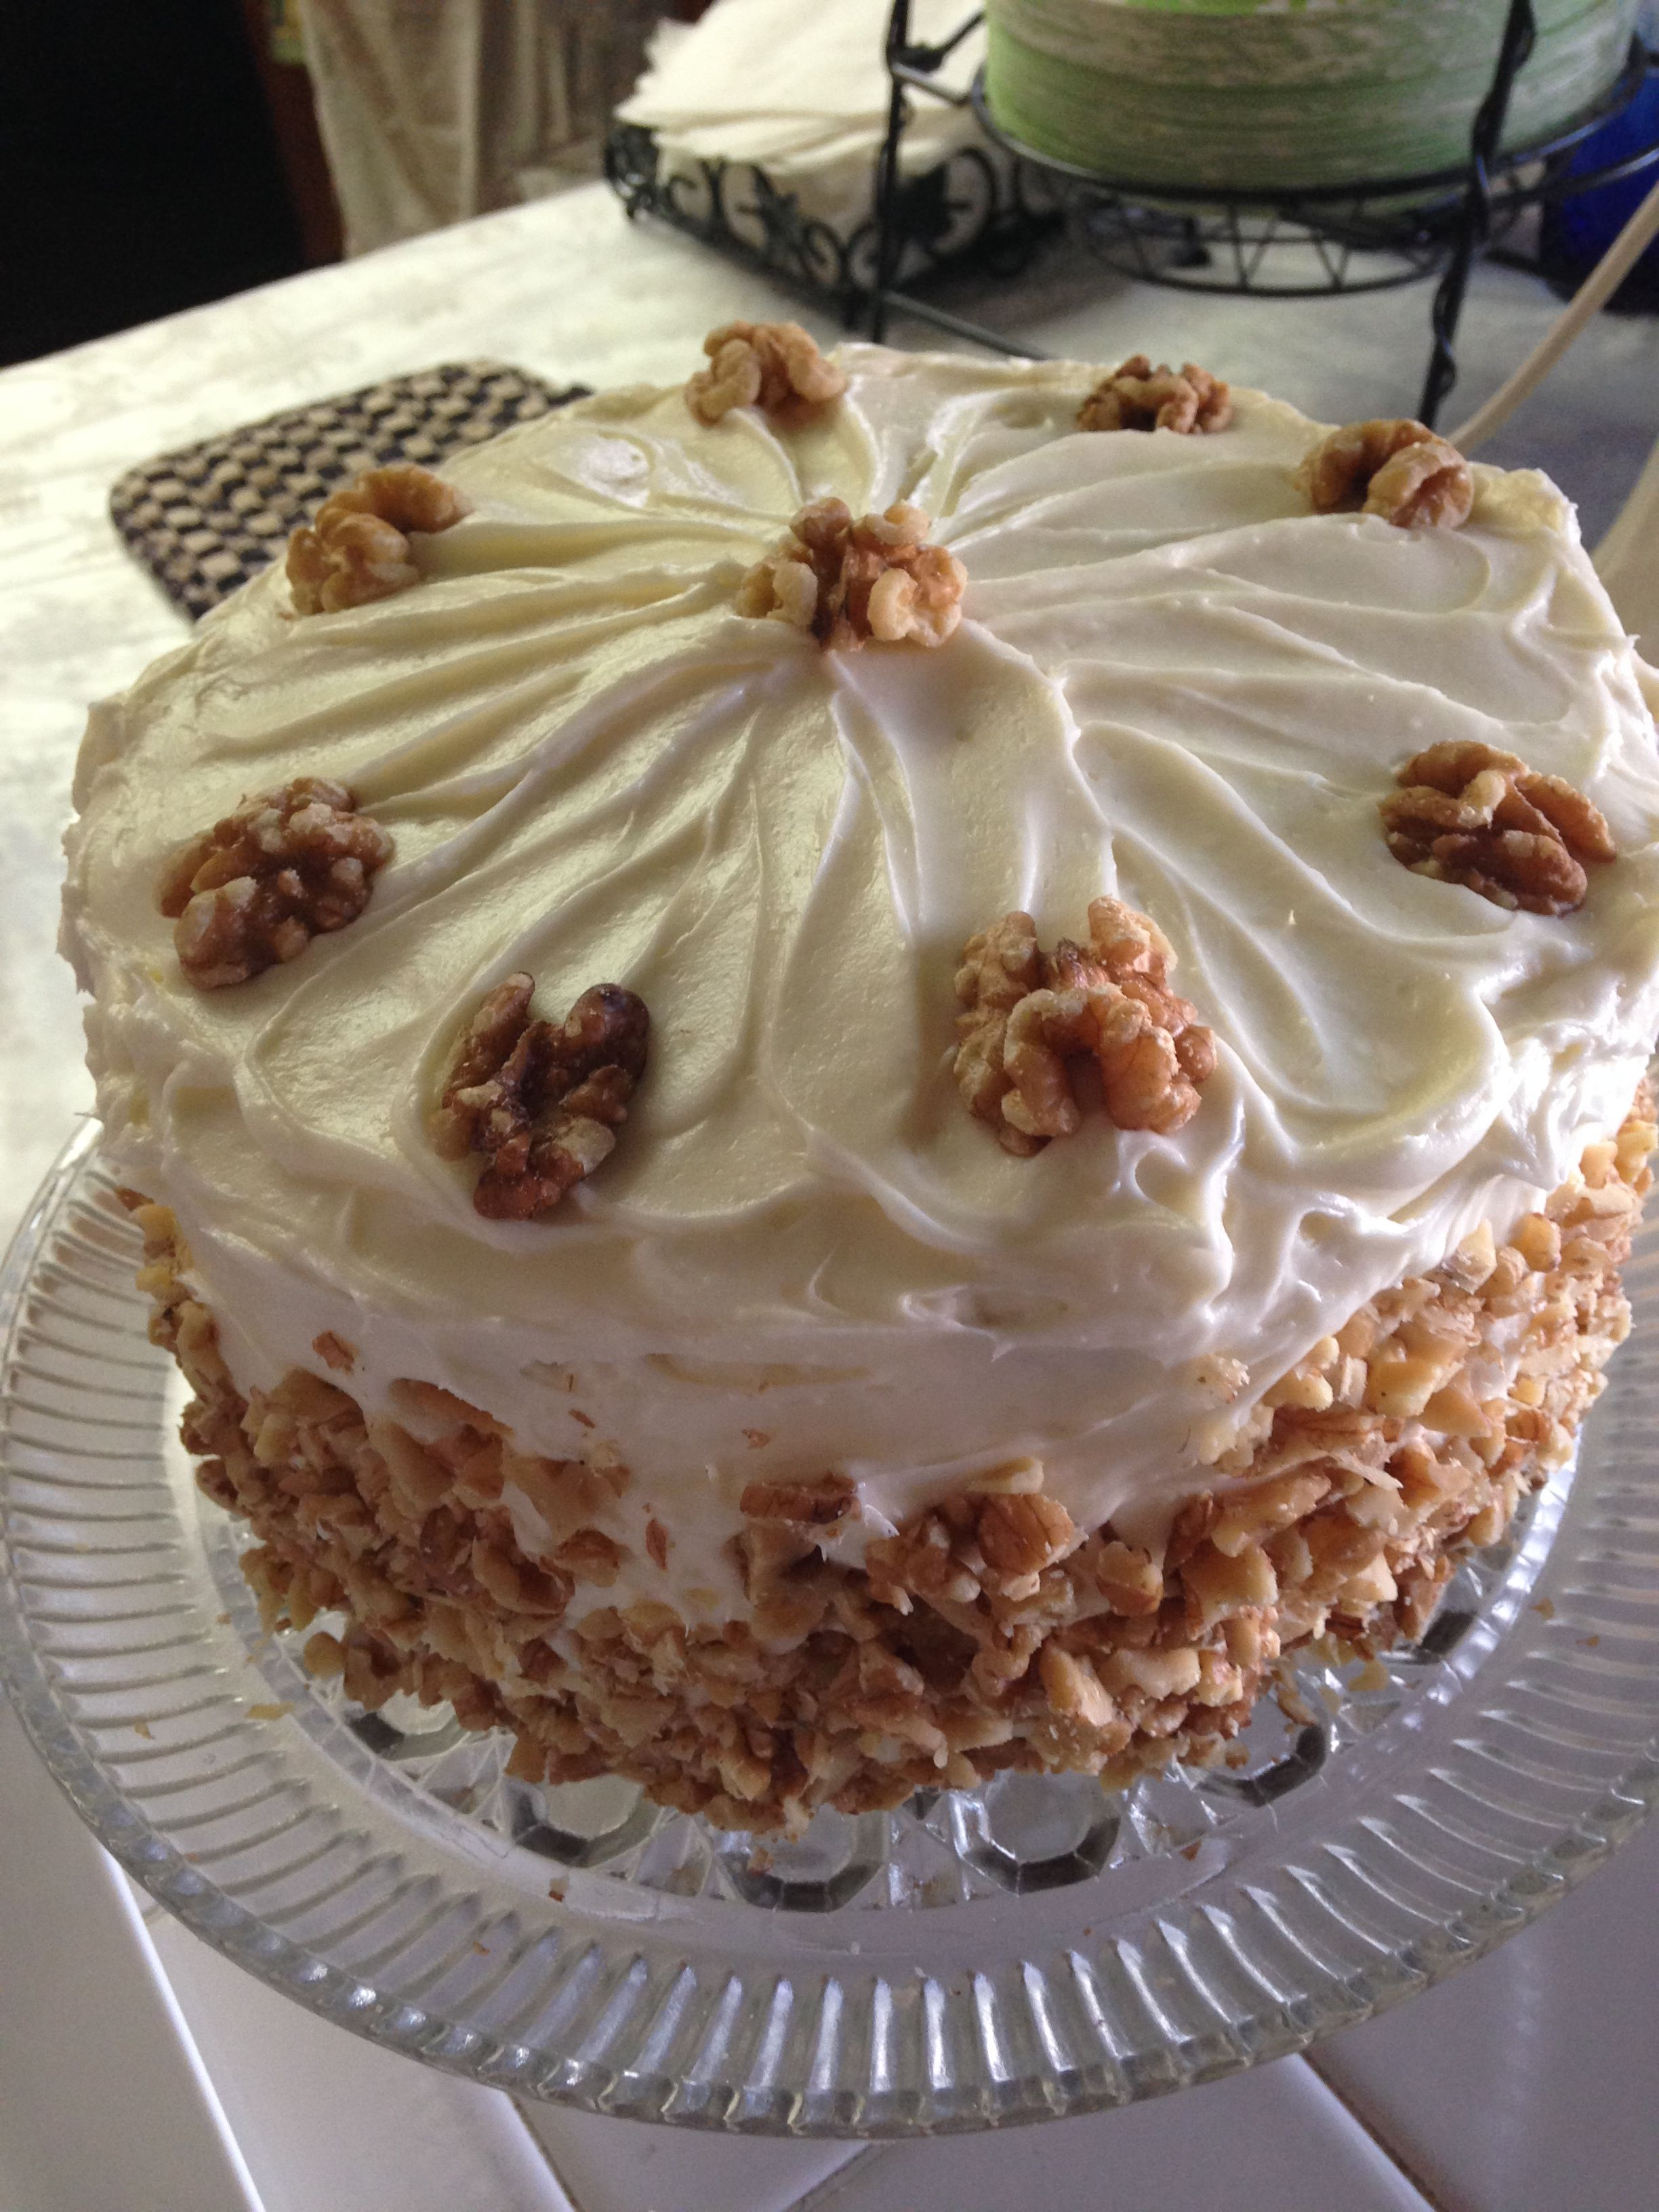 This Cake Was The Best Carrot I Have Ever Made It Is Trisha Yearwood S